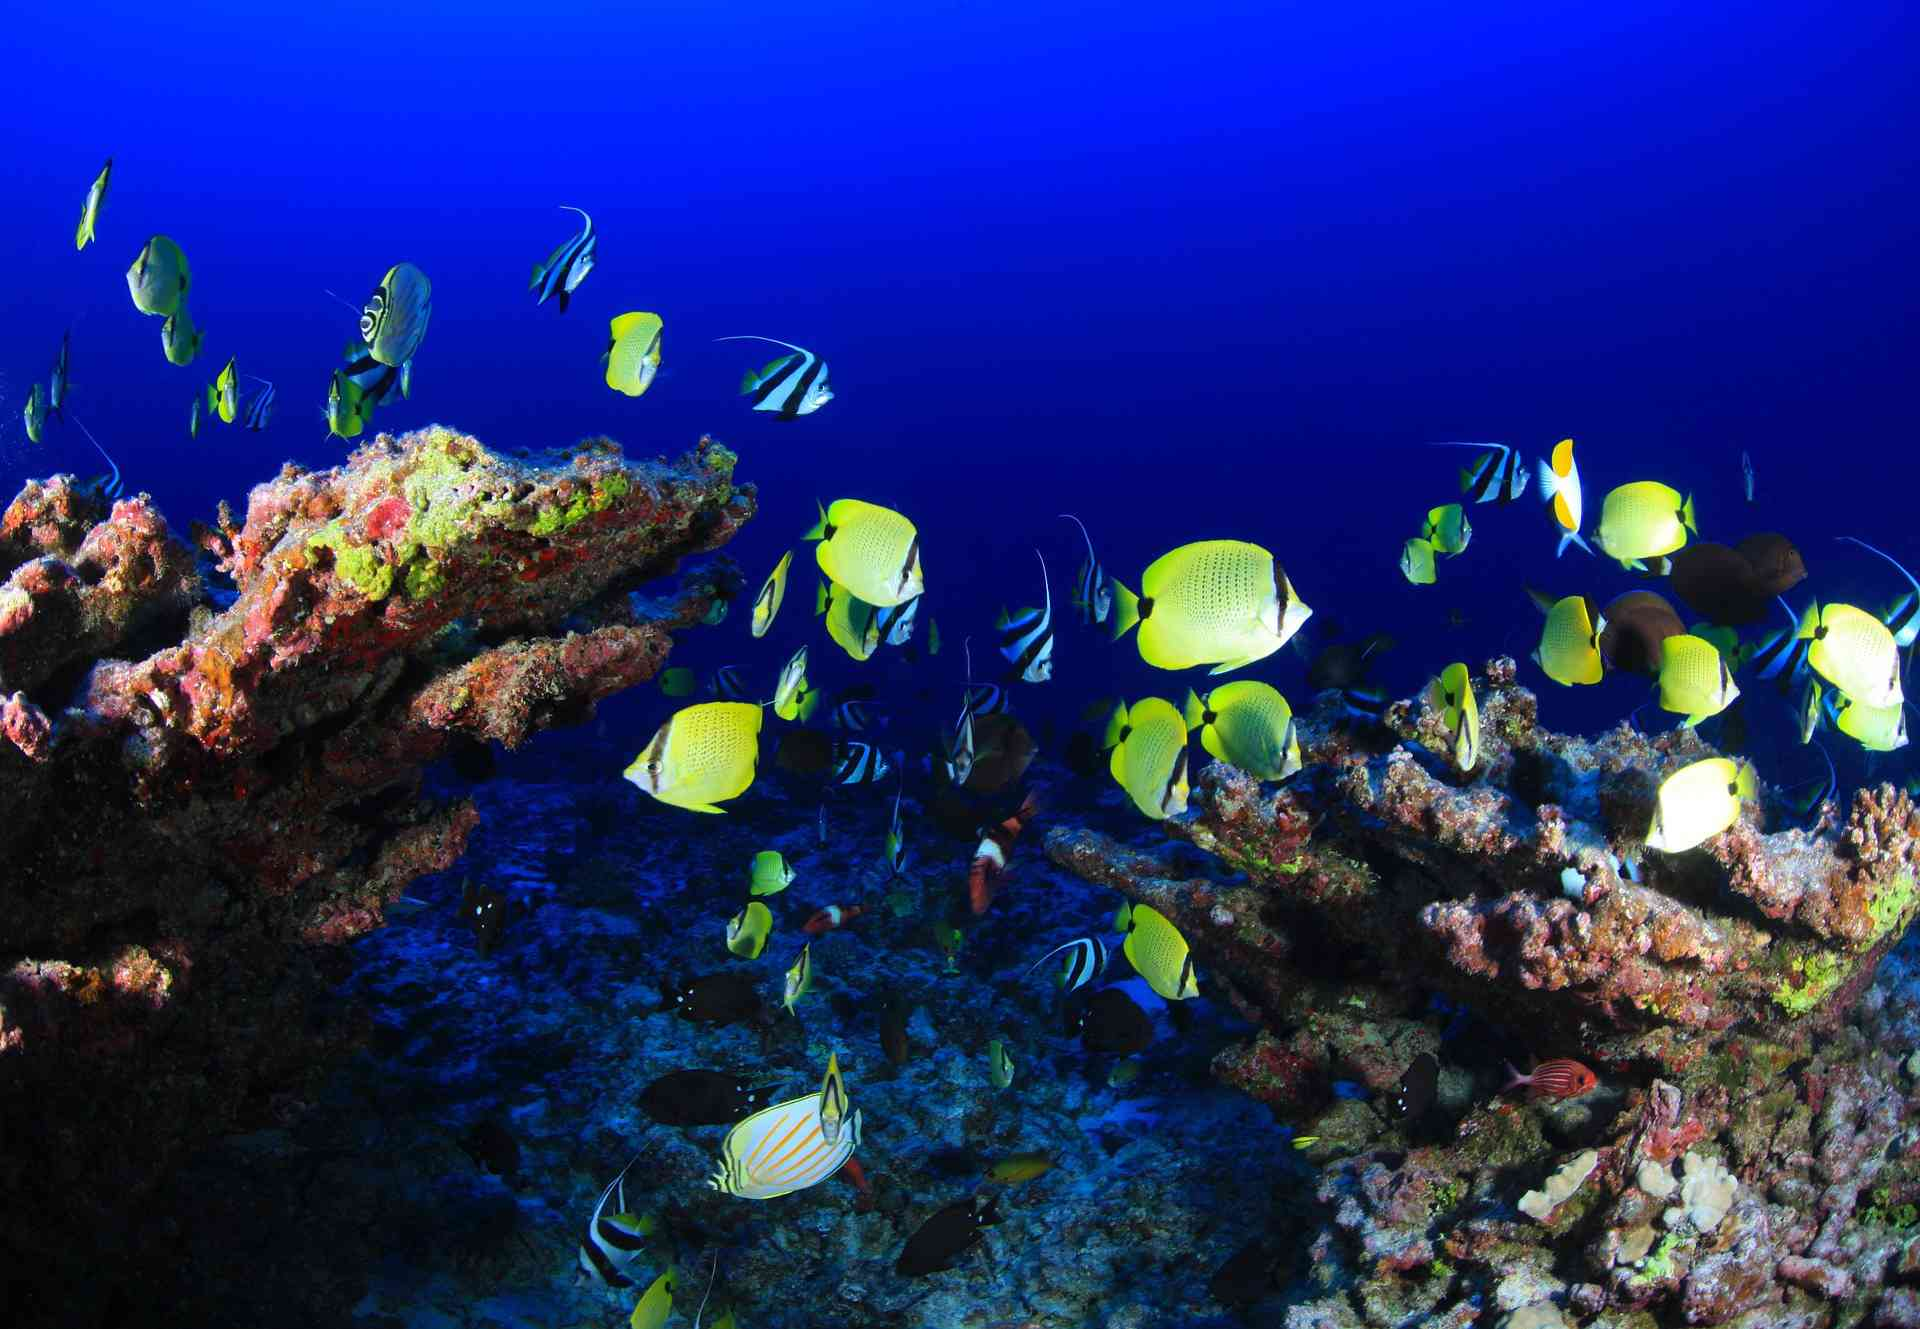 Underwater view of a coral reef with tropical fish swimming around.